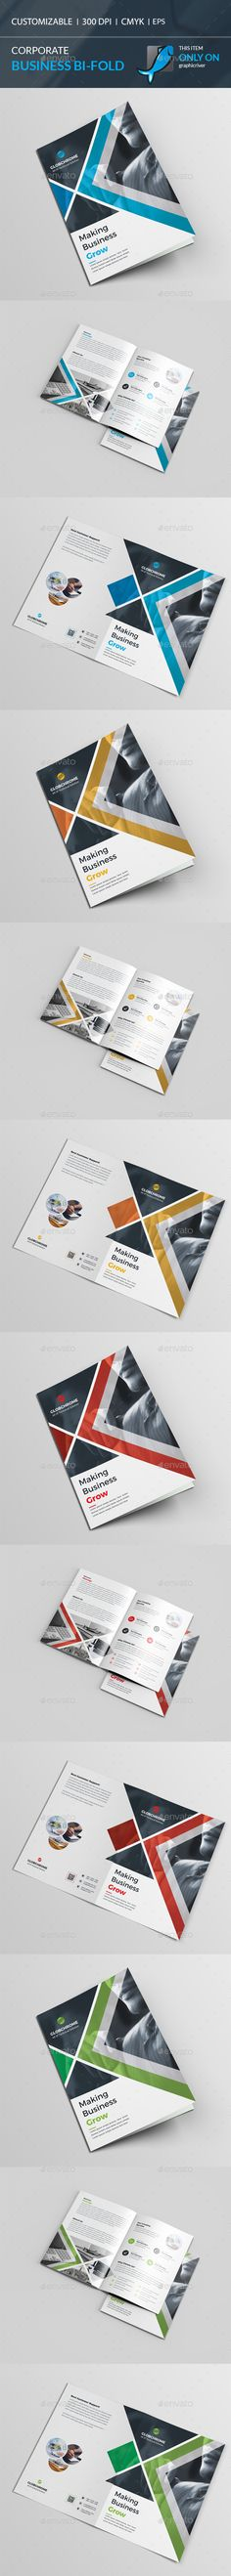 Bi-Fold Brochure Template Vector EPS, AI. Download here: http://graphicriver.net/item/bifold-brochure/15830557?ref=ksioks